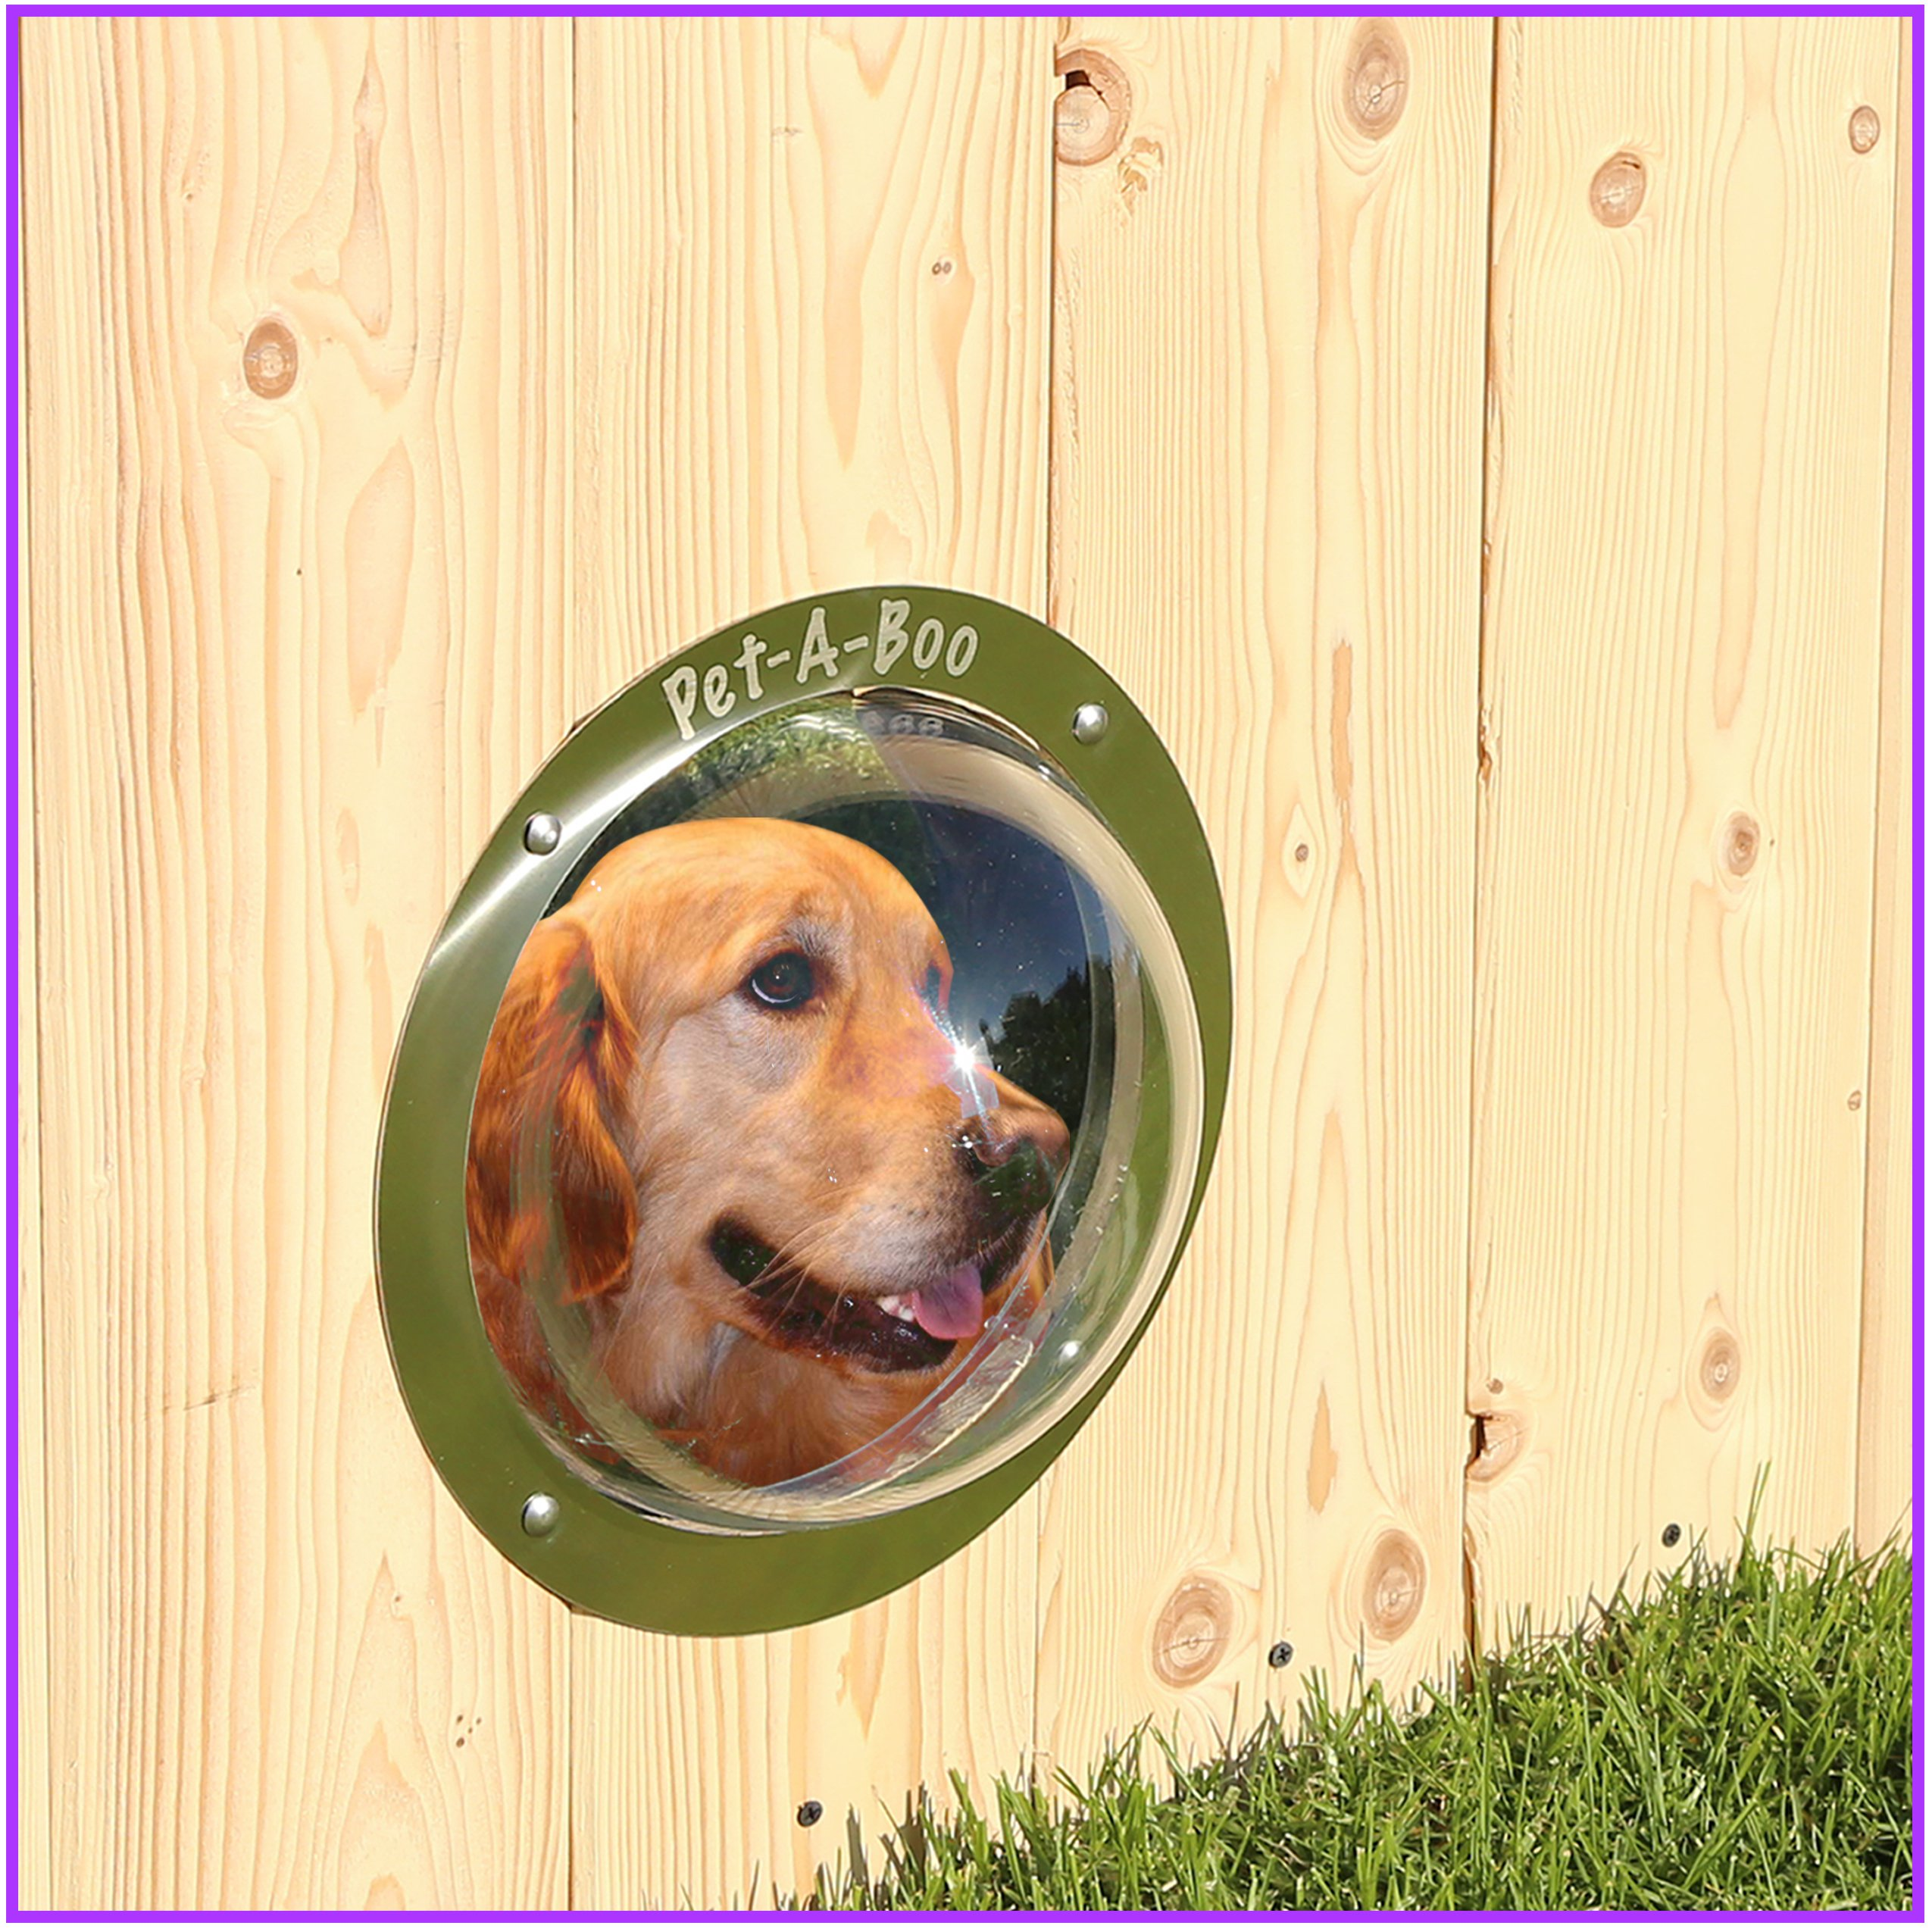 PET-A-BOO Pet Window Fence Acrylic Clear Dome 9.5'' Diameter | Allow your Pets to Safely Satisfy Their Curiosity through a Bubble Dome | Perfect Size for All Dogs